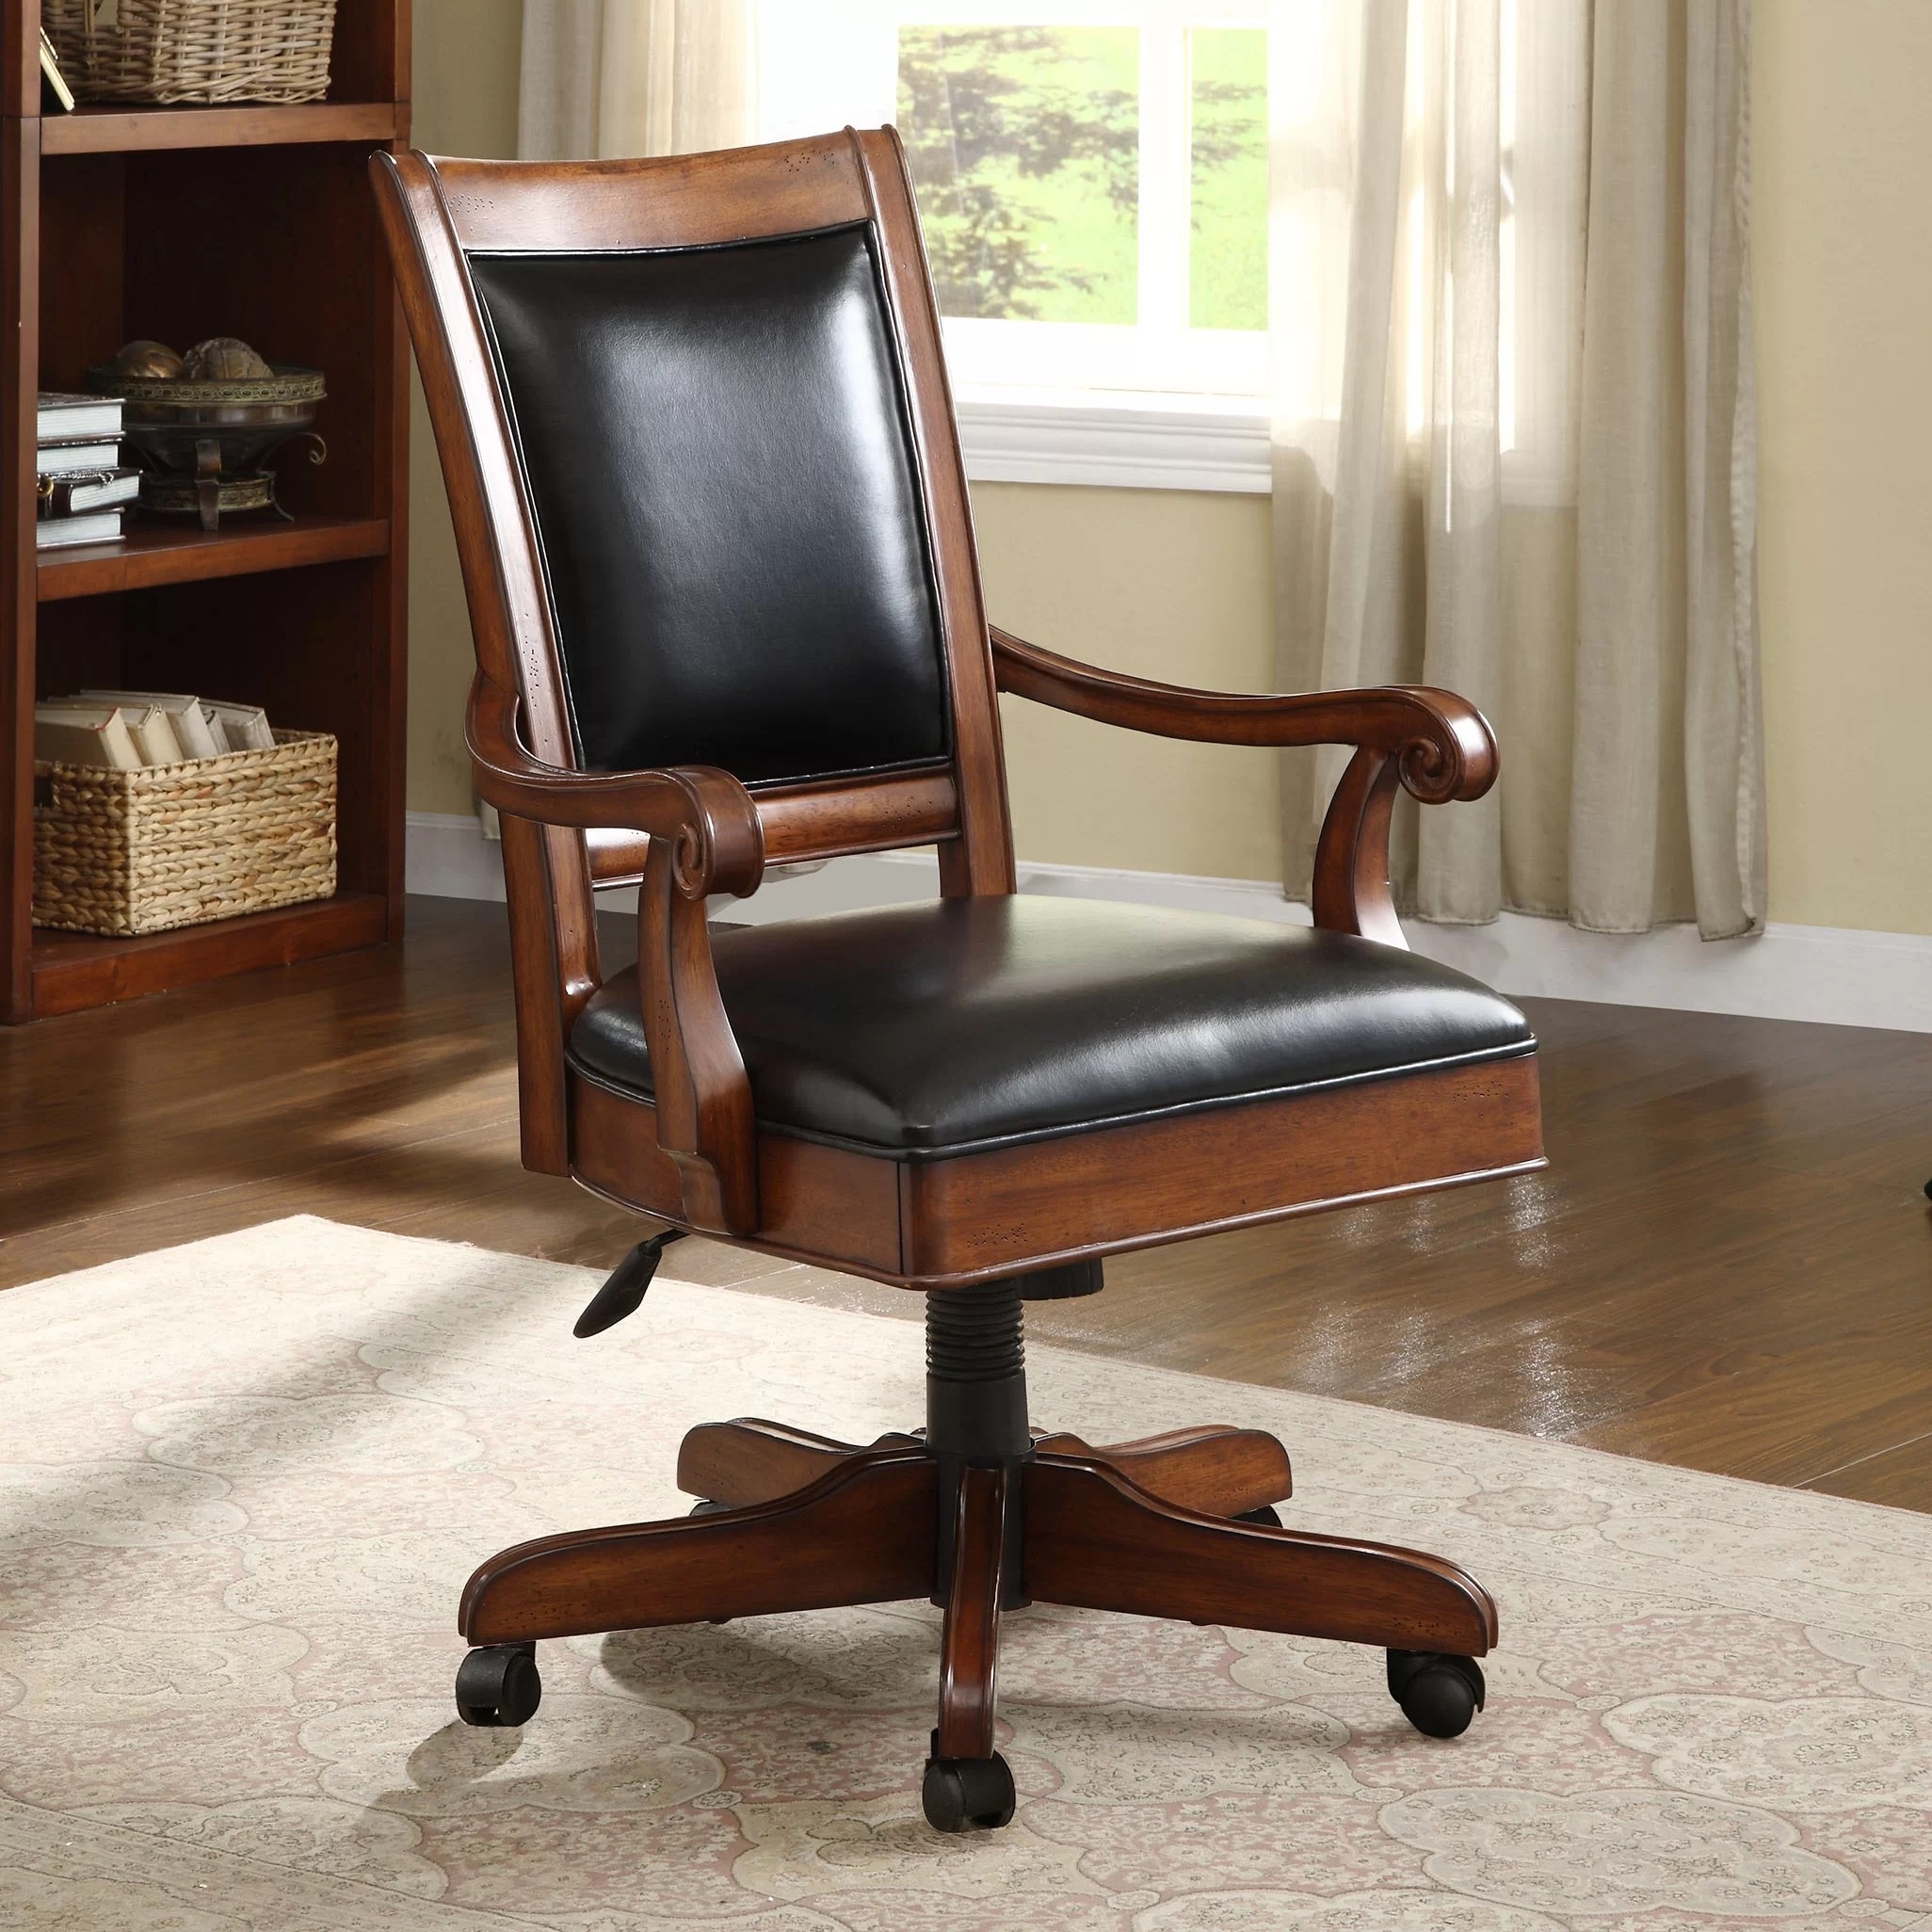 chair with desk arm rei camp chairs riverside furniture bristol court high back